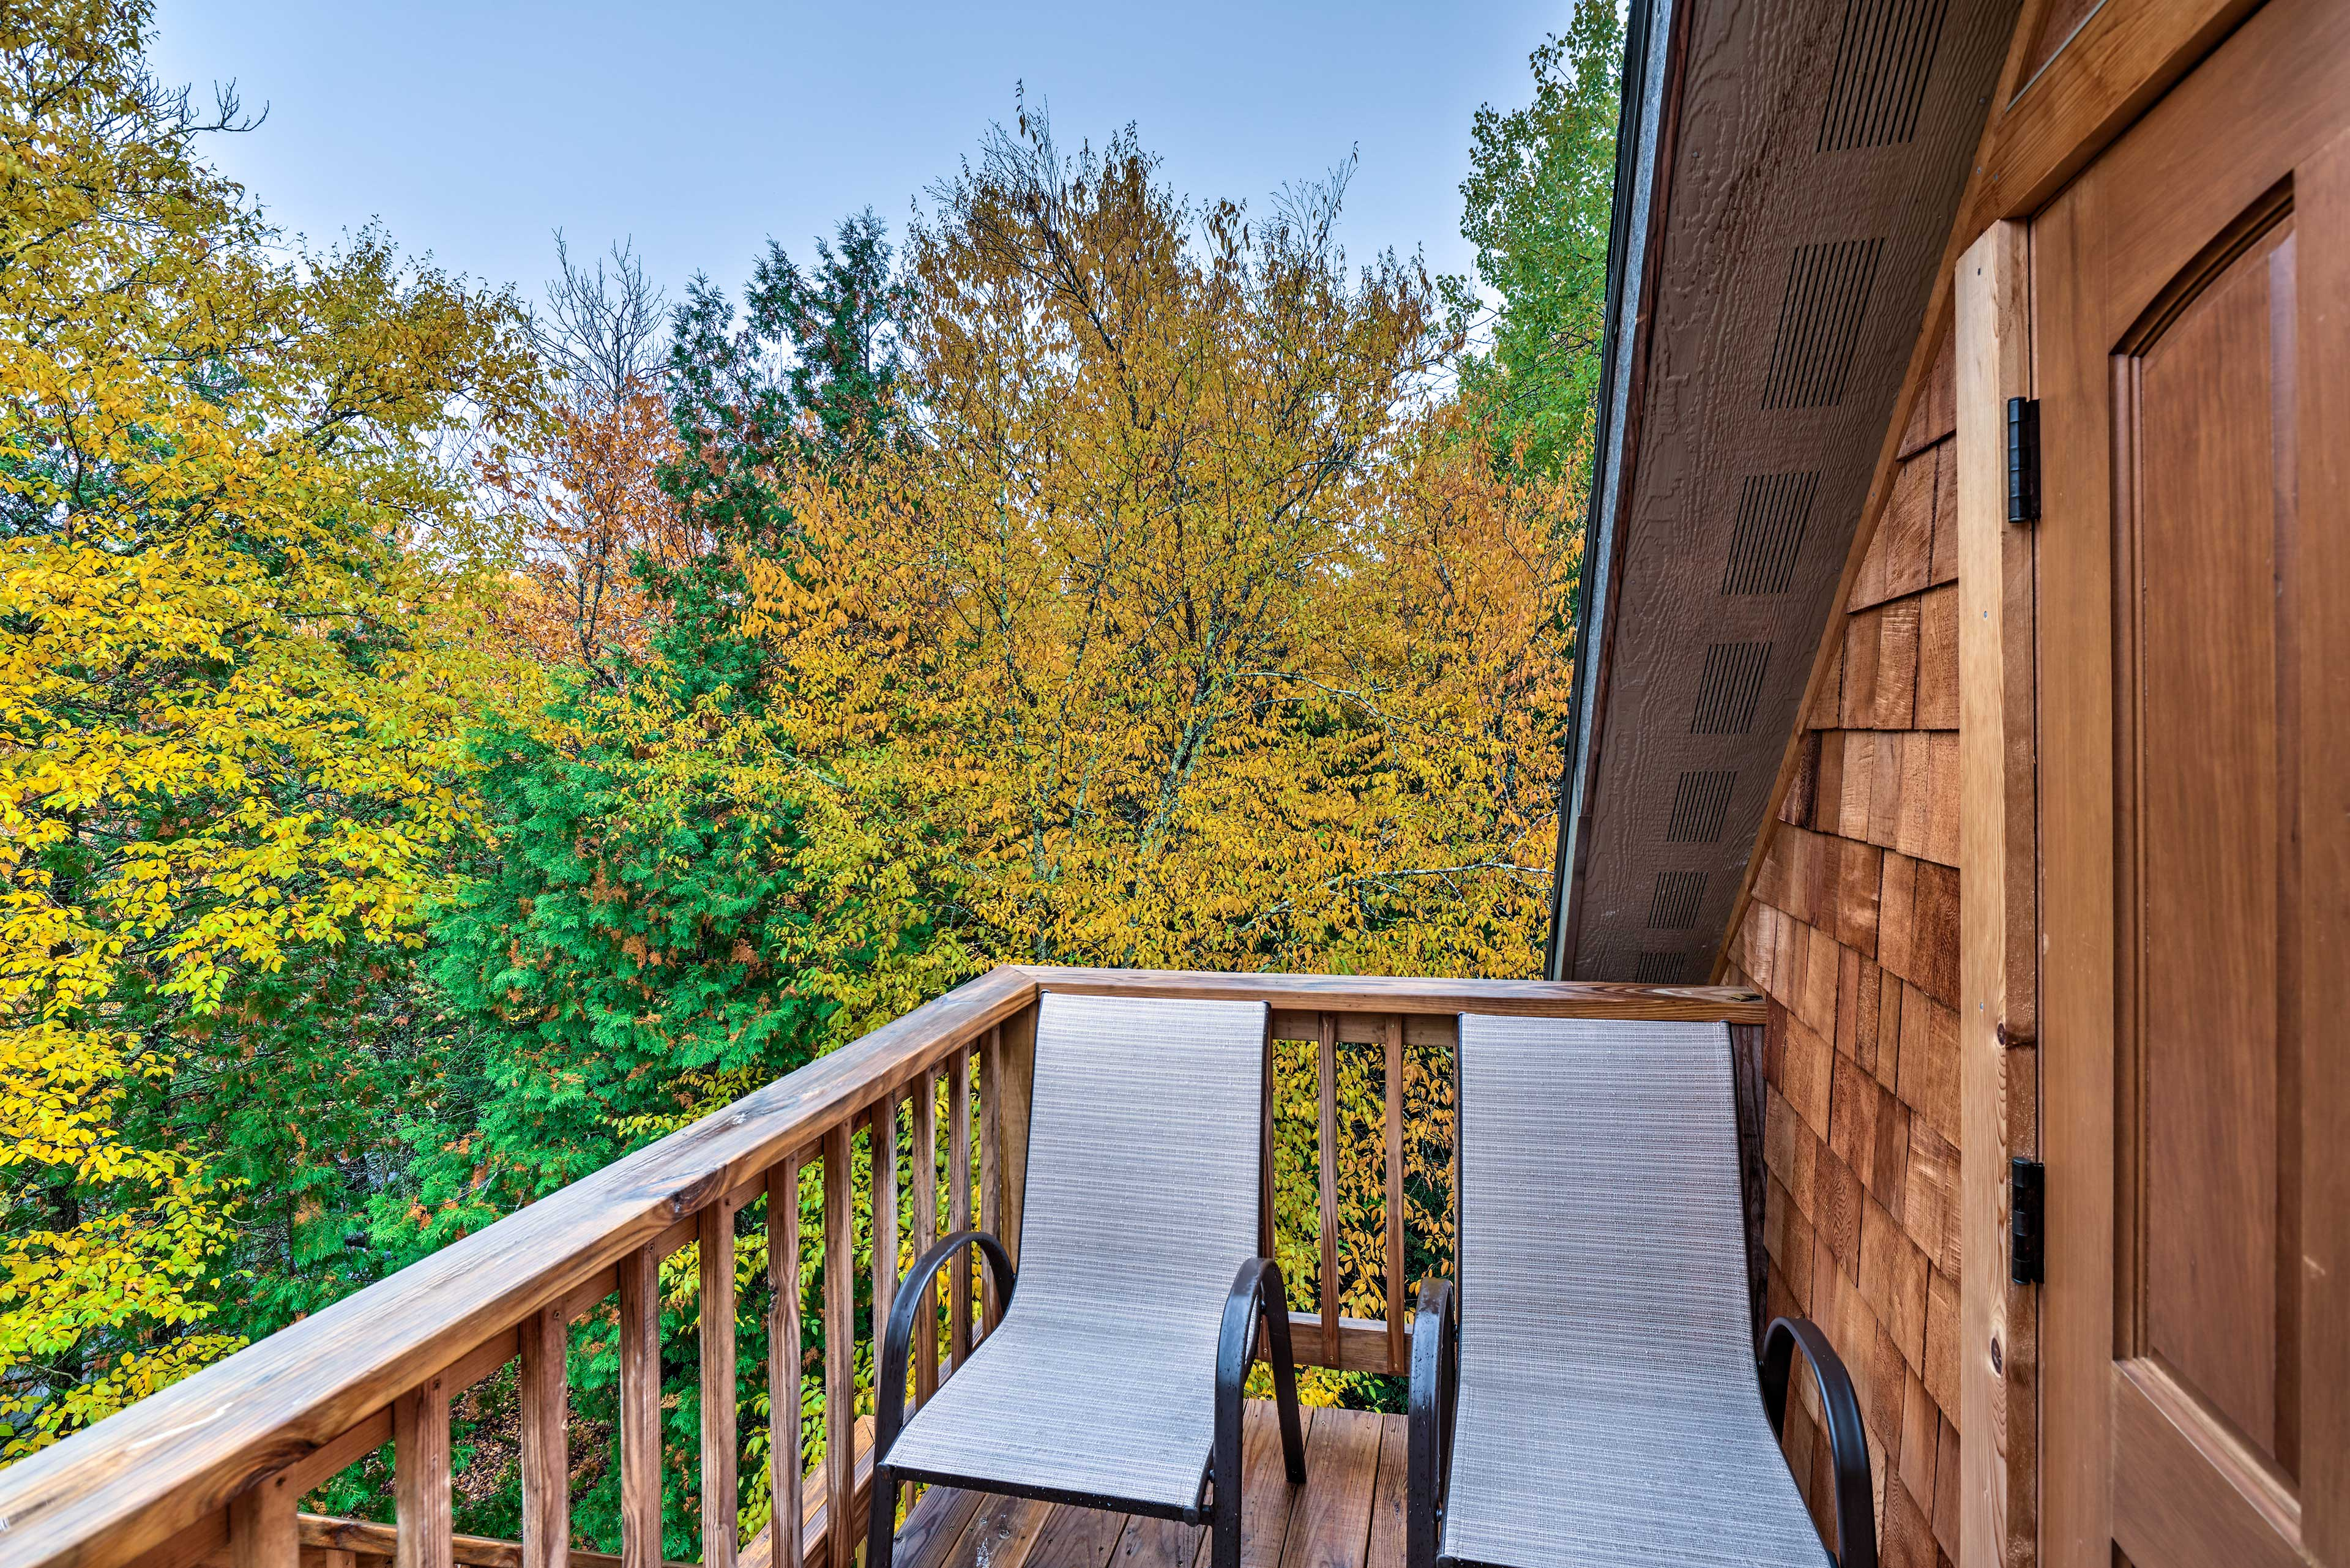 Sip on your morning cofffee on the furnished balcony.